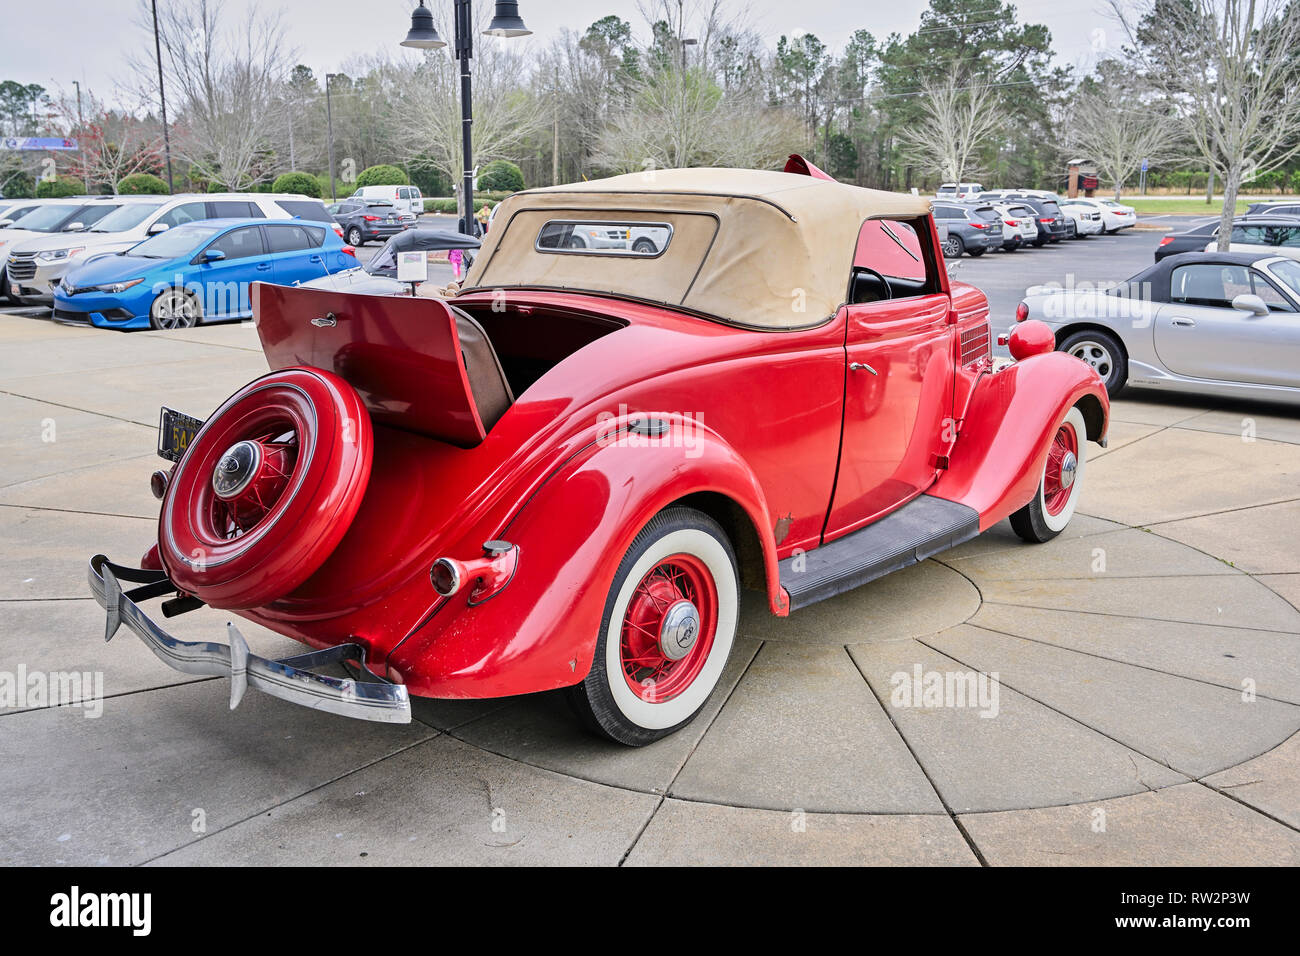 Red classic or vintage Ford 48 Roadster with an open rumble seat and covered spare tire on display at a vintage car show in Pike Road Alabama USA. Stock Photo